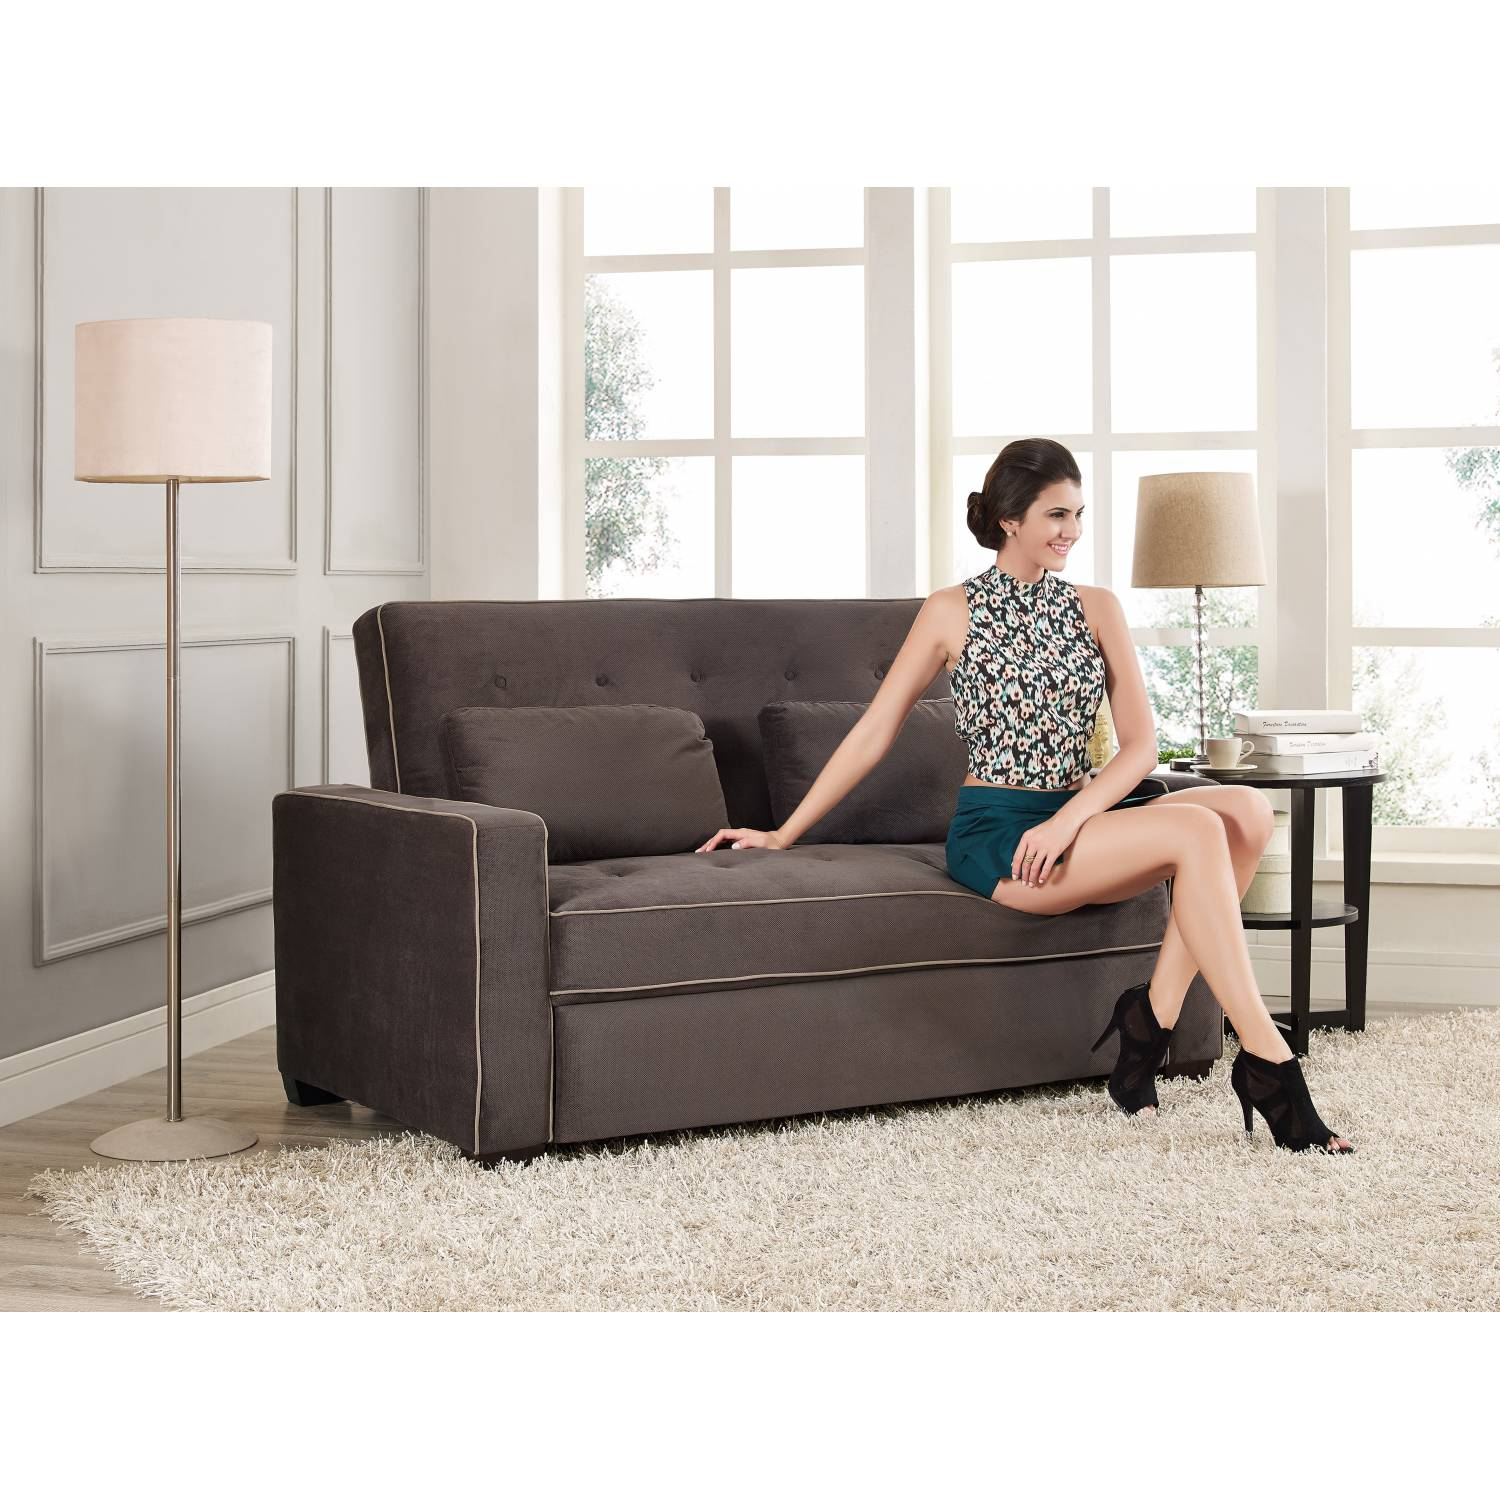 Beau Furnituredirects2u.com